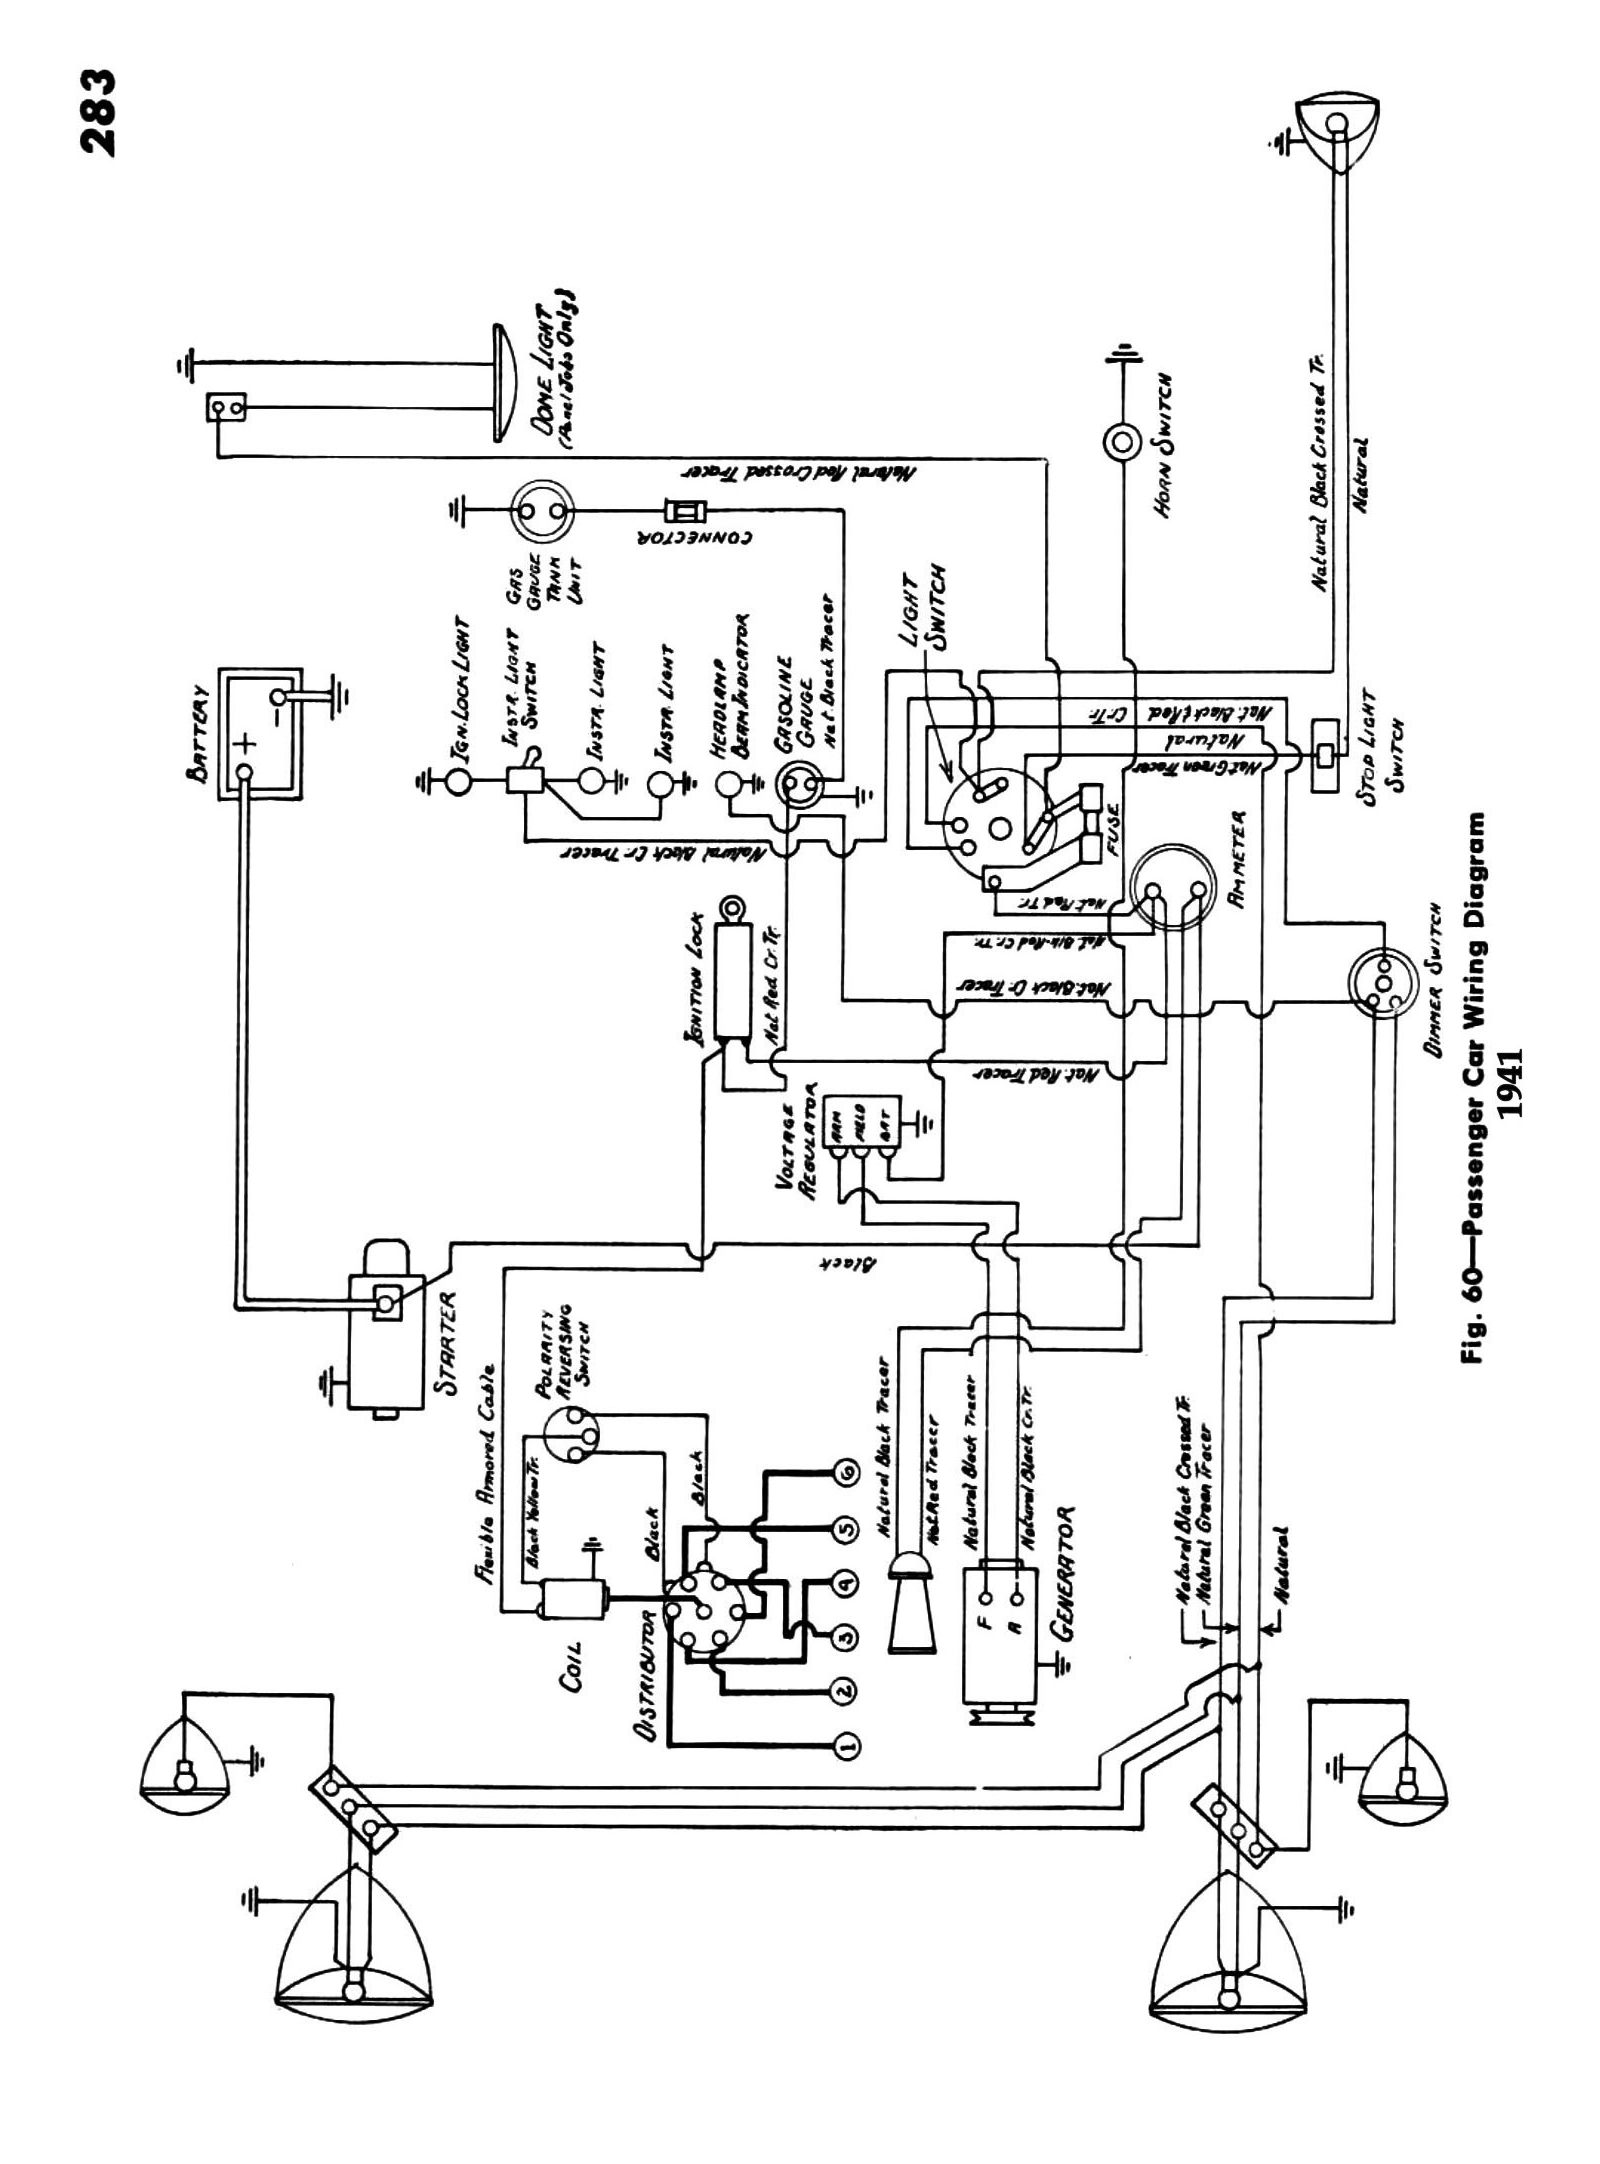 41csm283 chevy truck wiring diagram chevy fuel pump wiring diagram \u2022 wiring wiring diagram for 1948 ford truck at alyssarenee.co